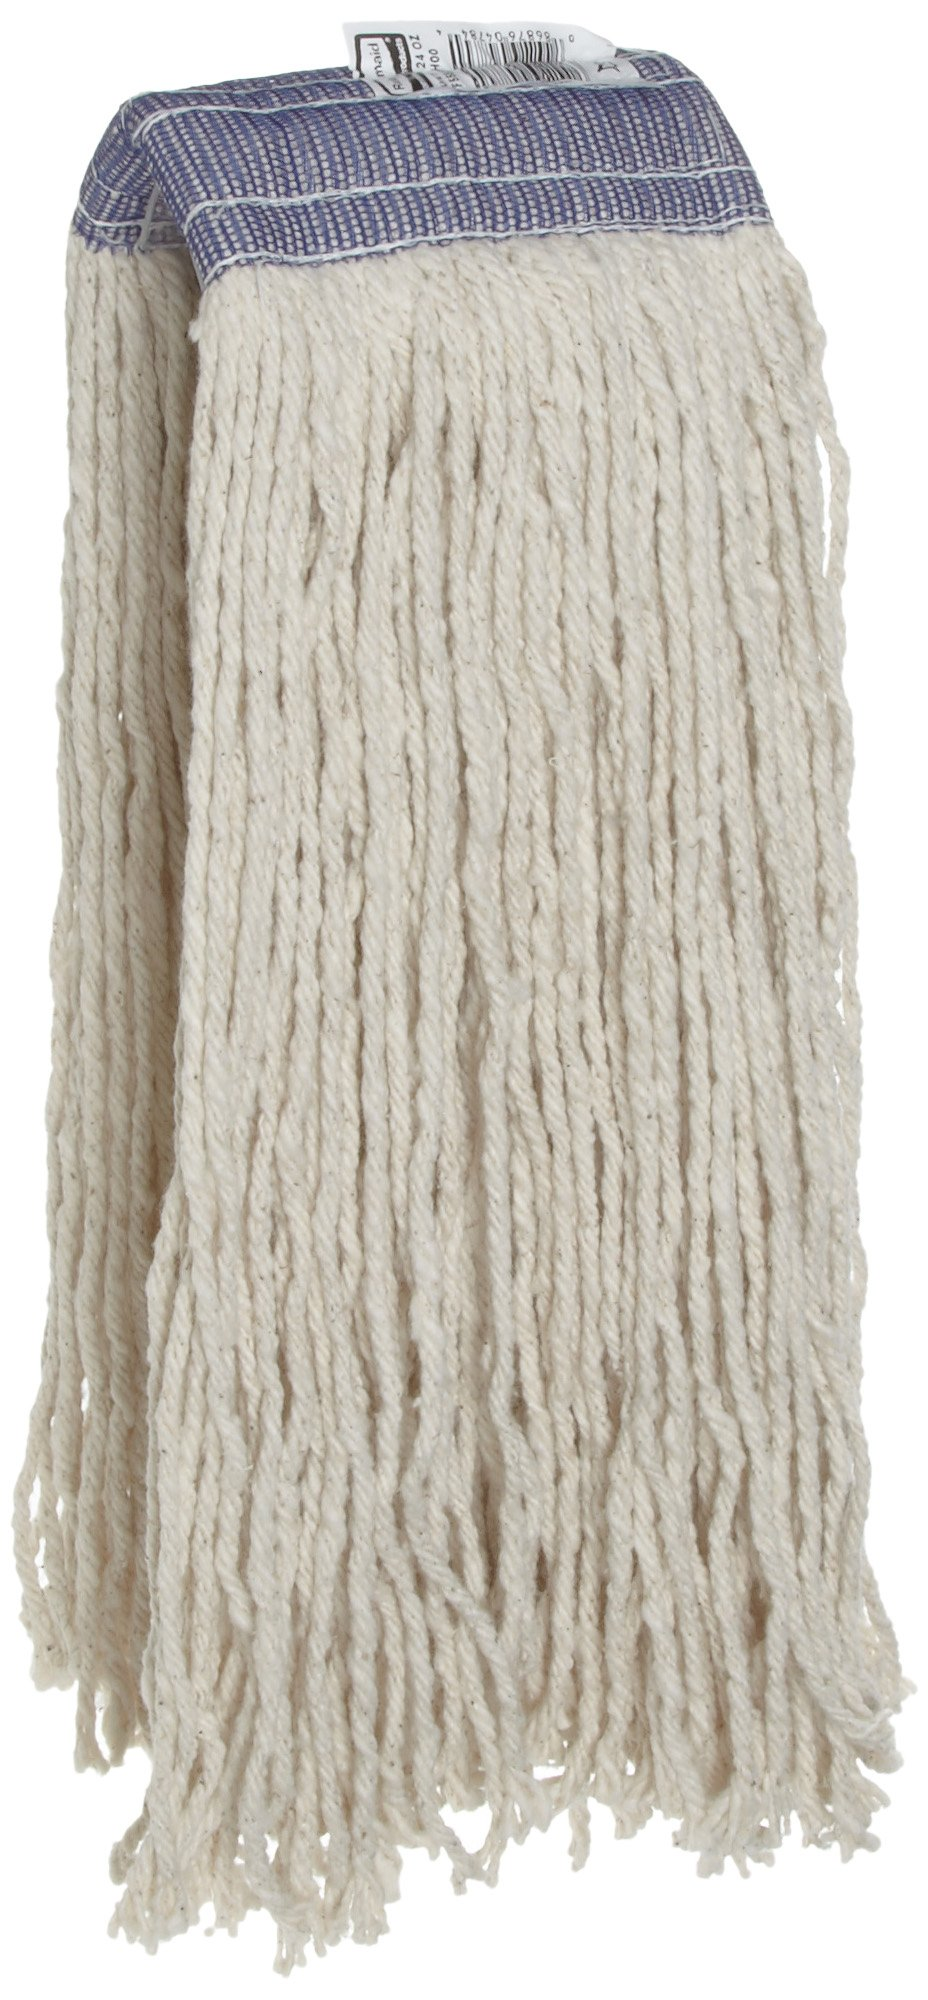 Rubbermaid Commercial FGF55800WH00 Premium 8-Ply Cut-End Blend Mop, 24-ounce, 5-inch White Headband